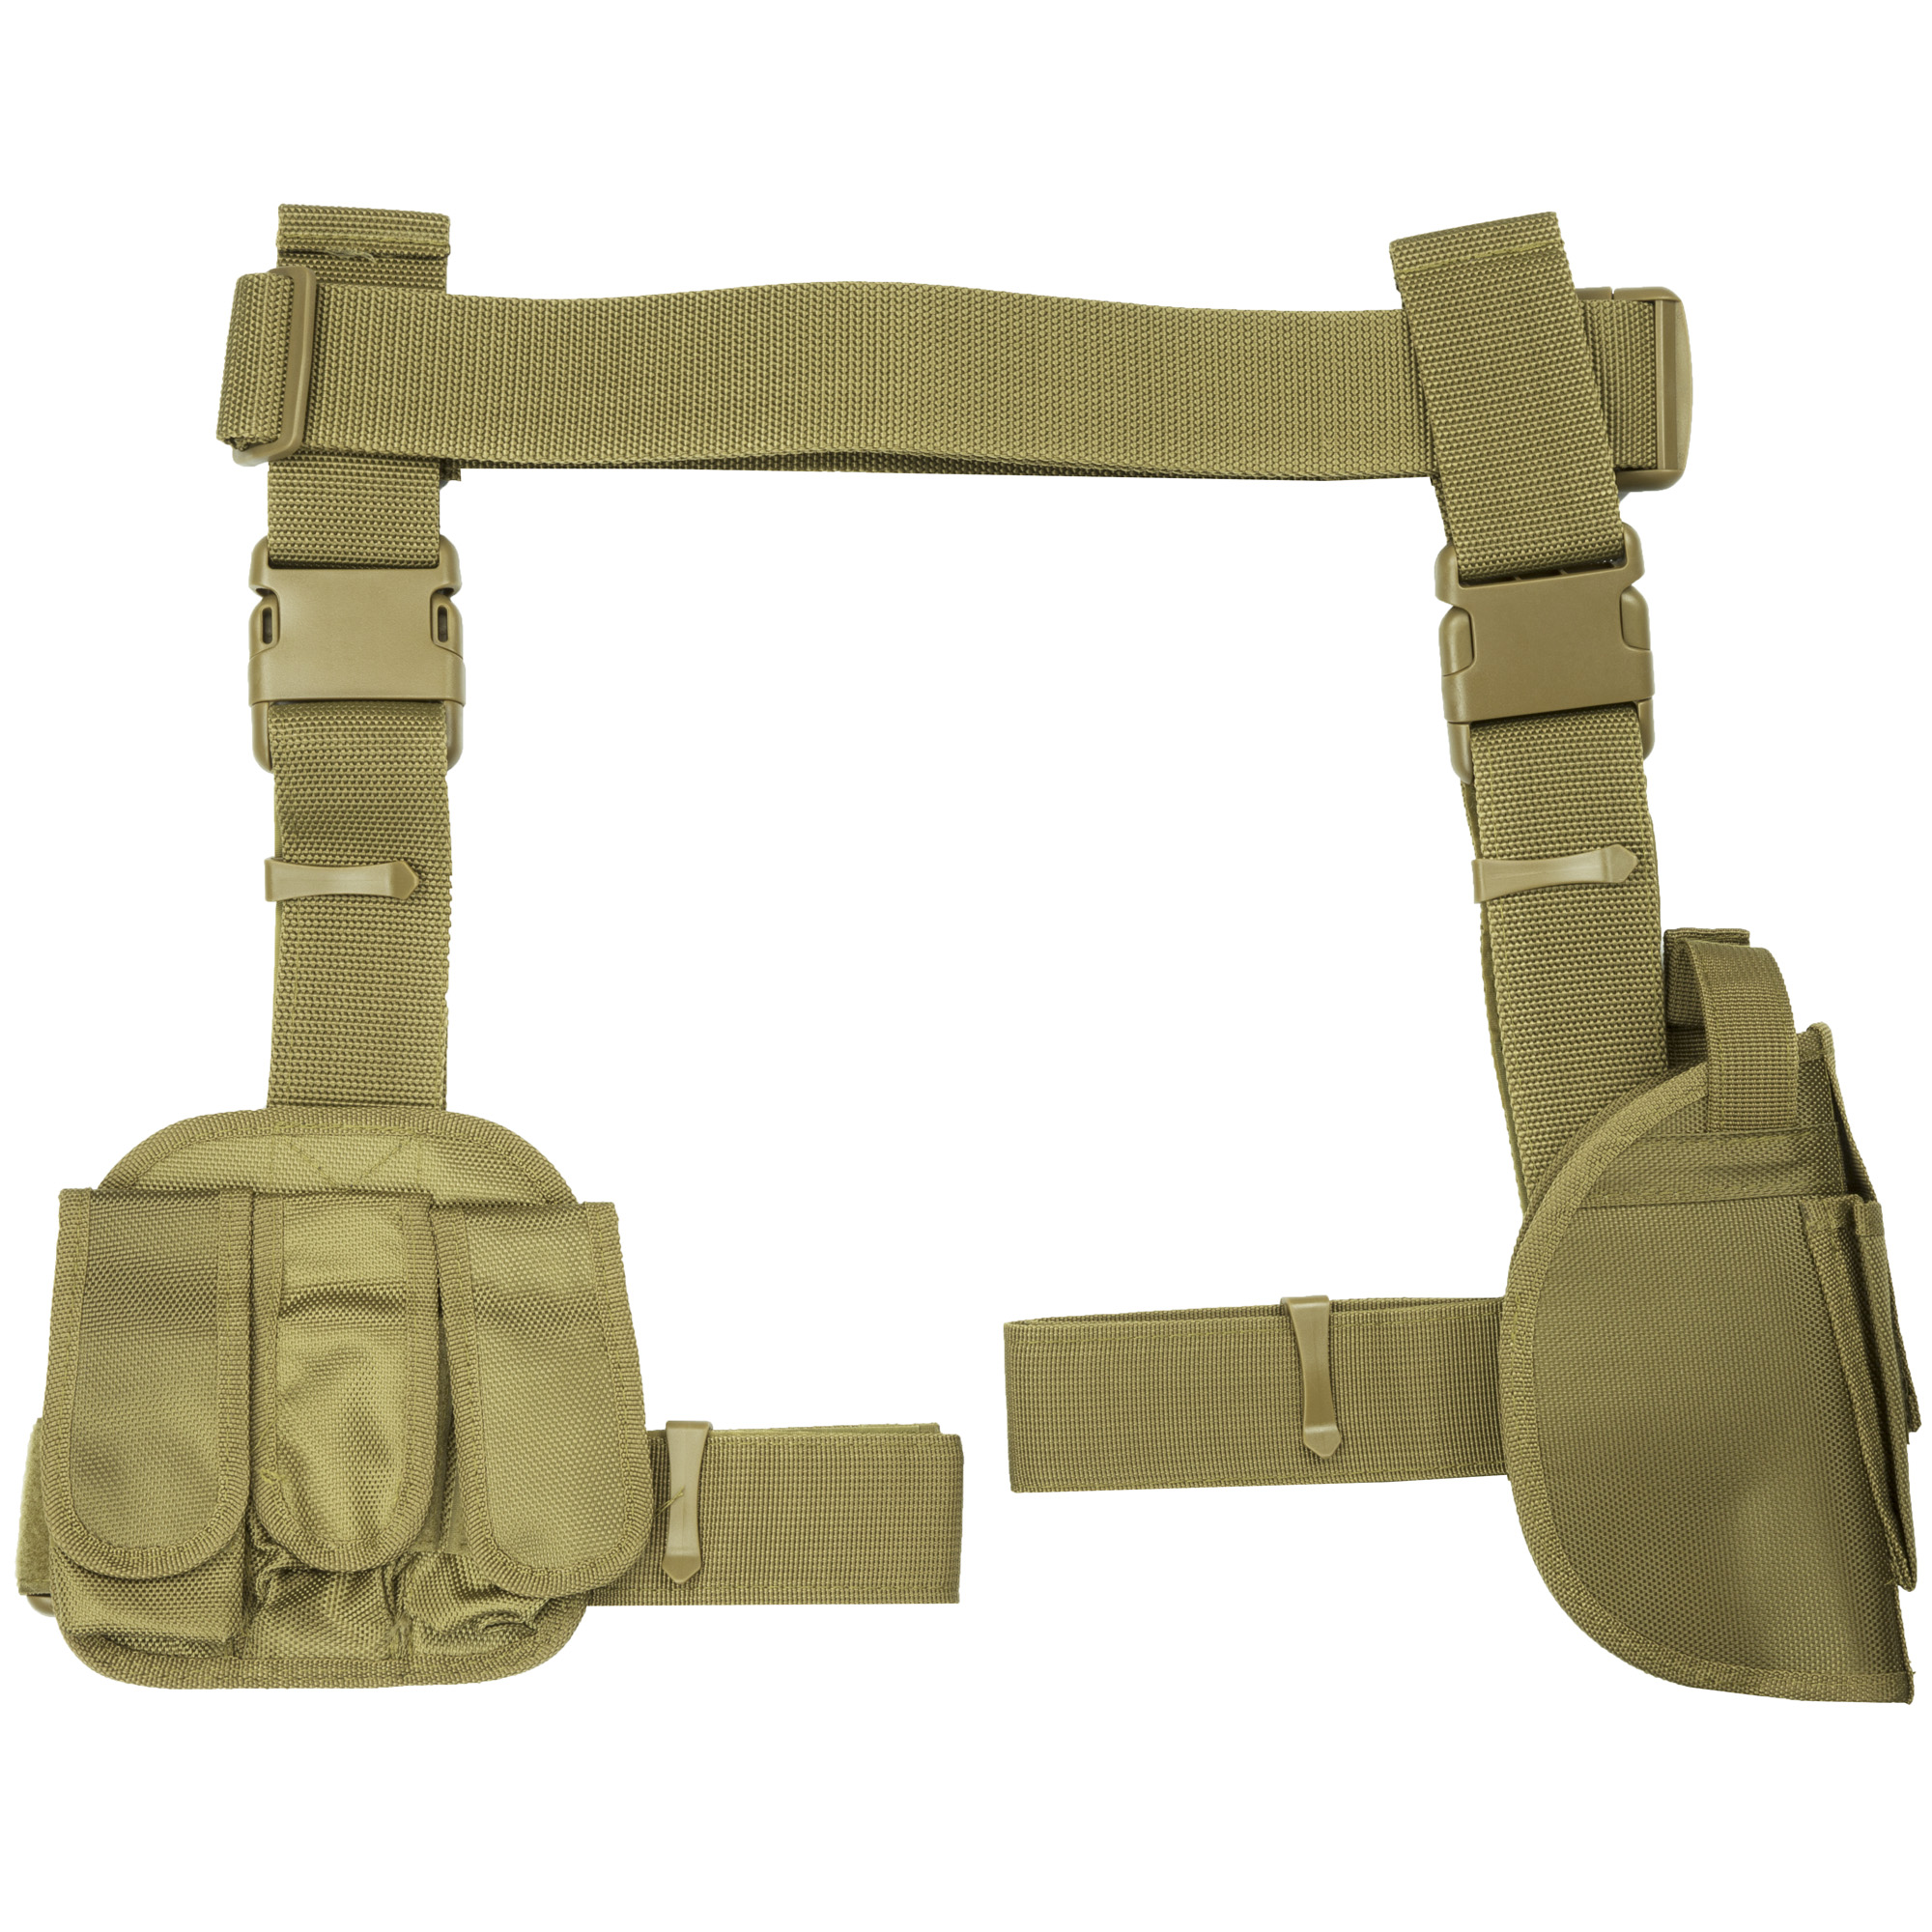 The Universal Drop Leg Holster includes thumb snap and a single mag pouch on the front. It is adjustable for drop leg height with a quick release buckle and an adjustable thigh strap with a quick release buckle. The triple magazine pouch with hook and loop mag flaps secure your pistol magazines.